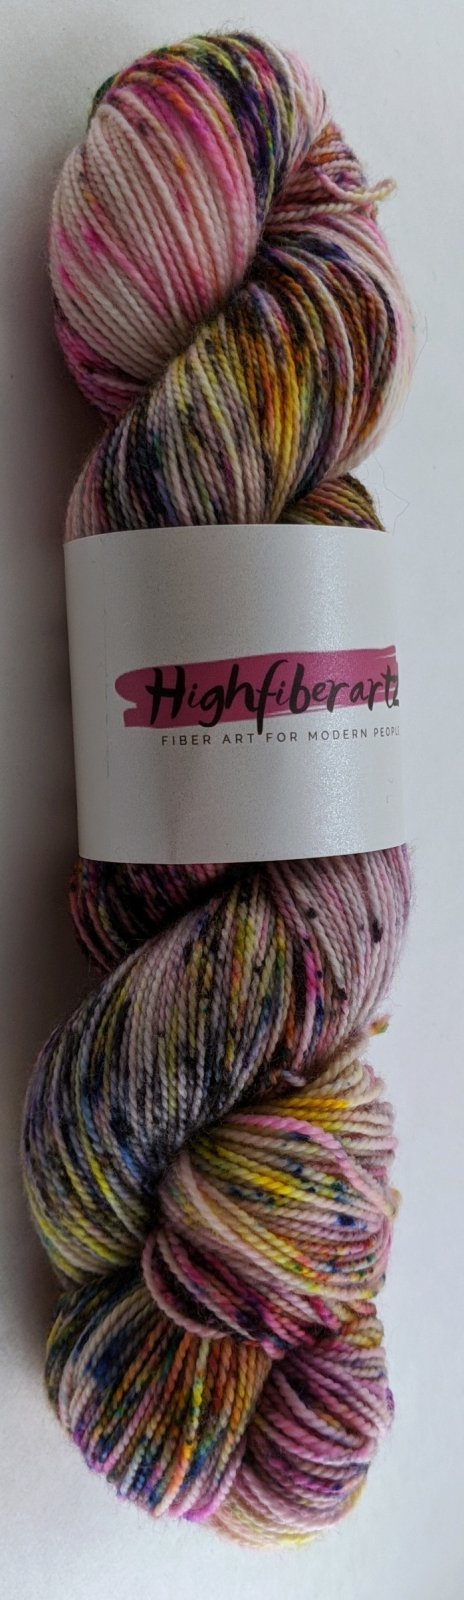 Highfiberartz Everyday Sock